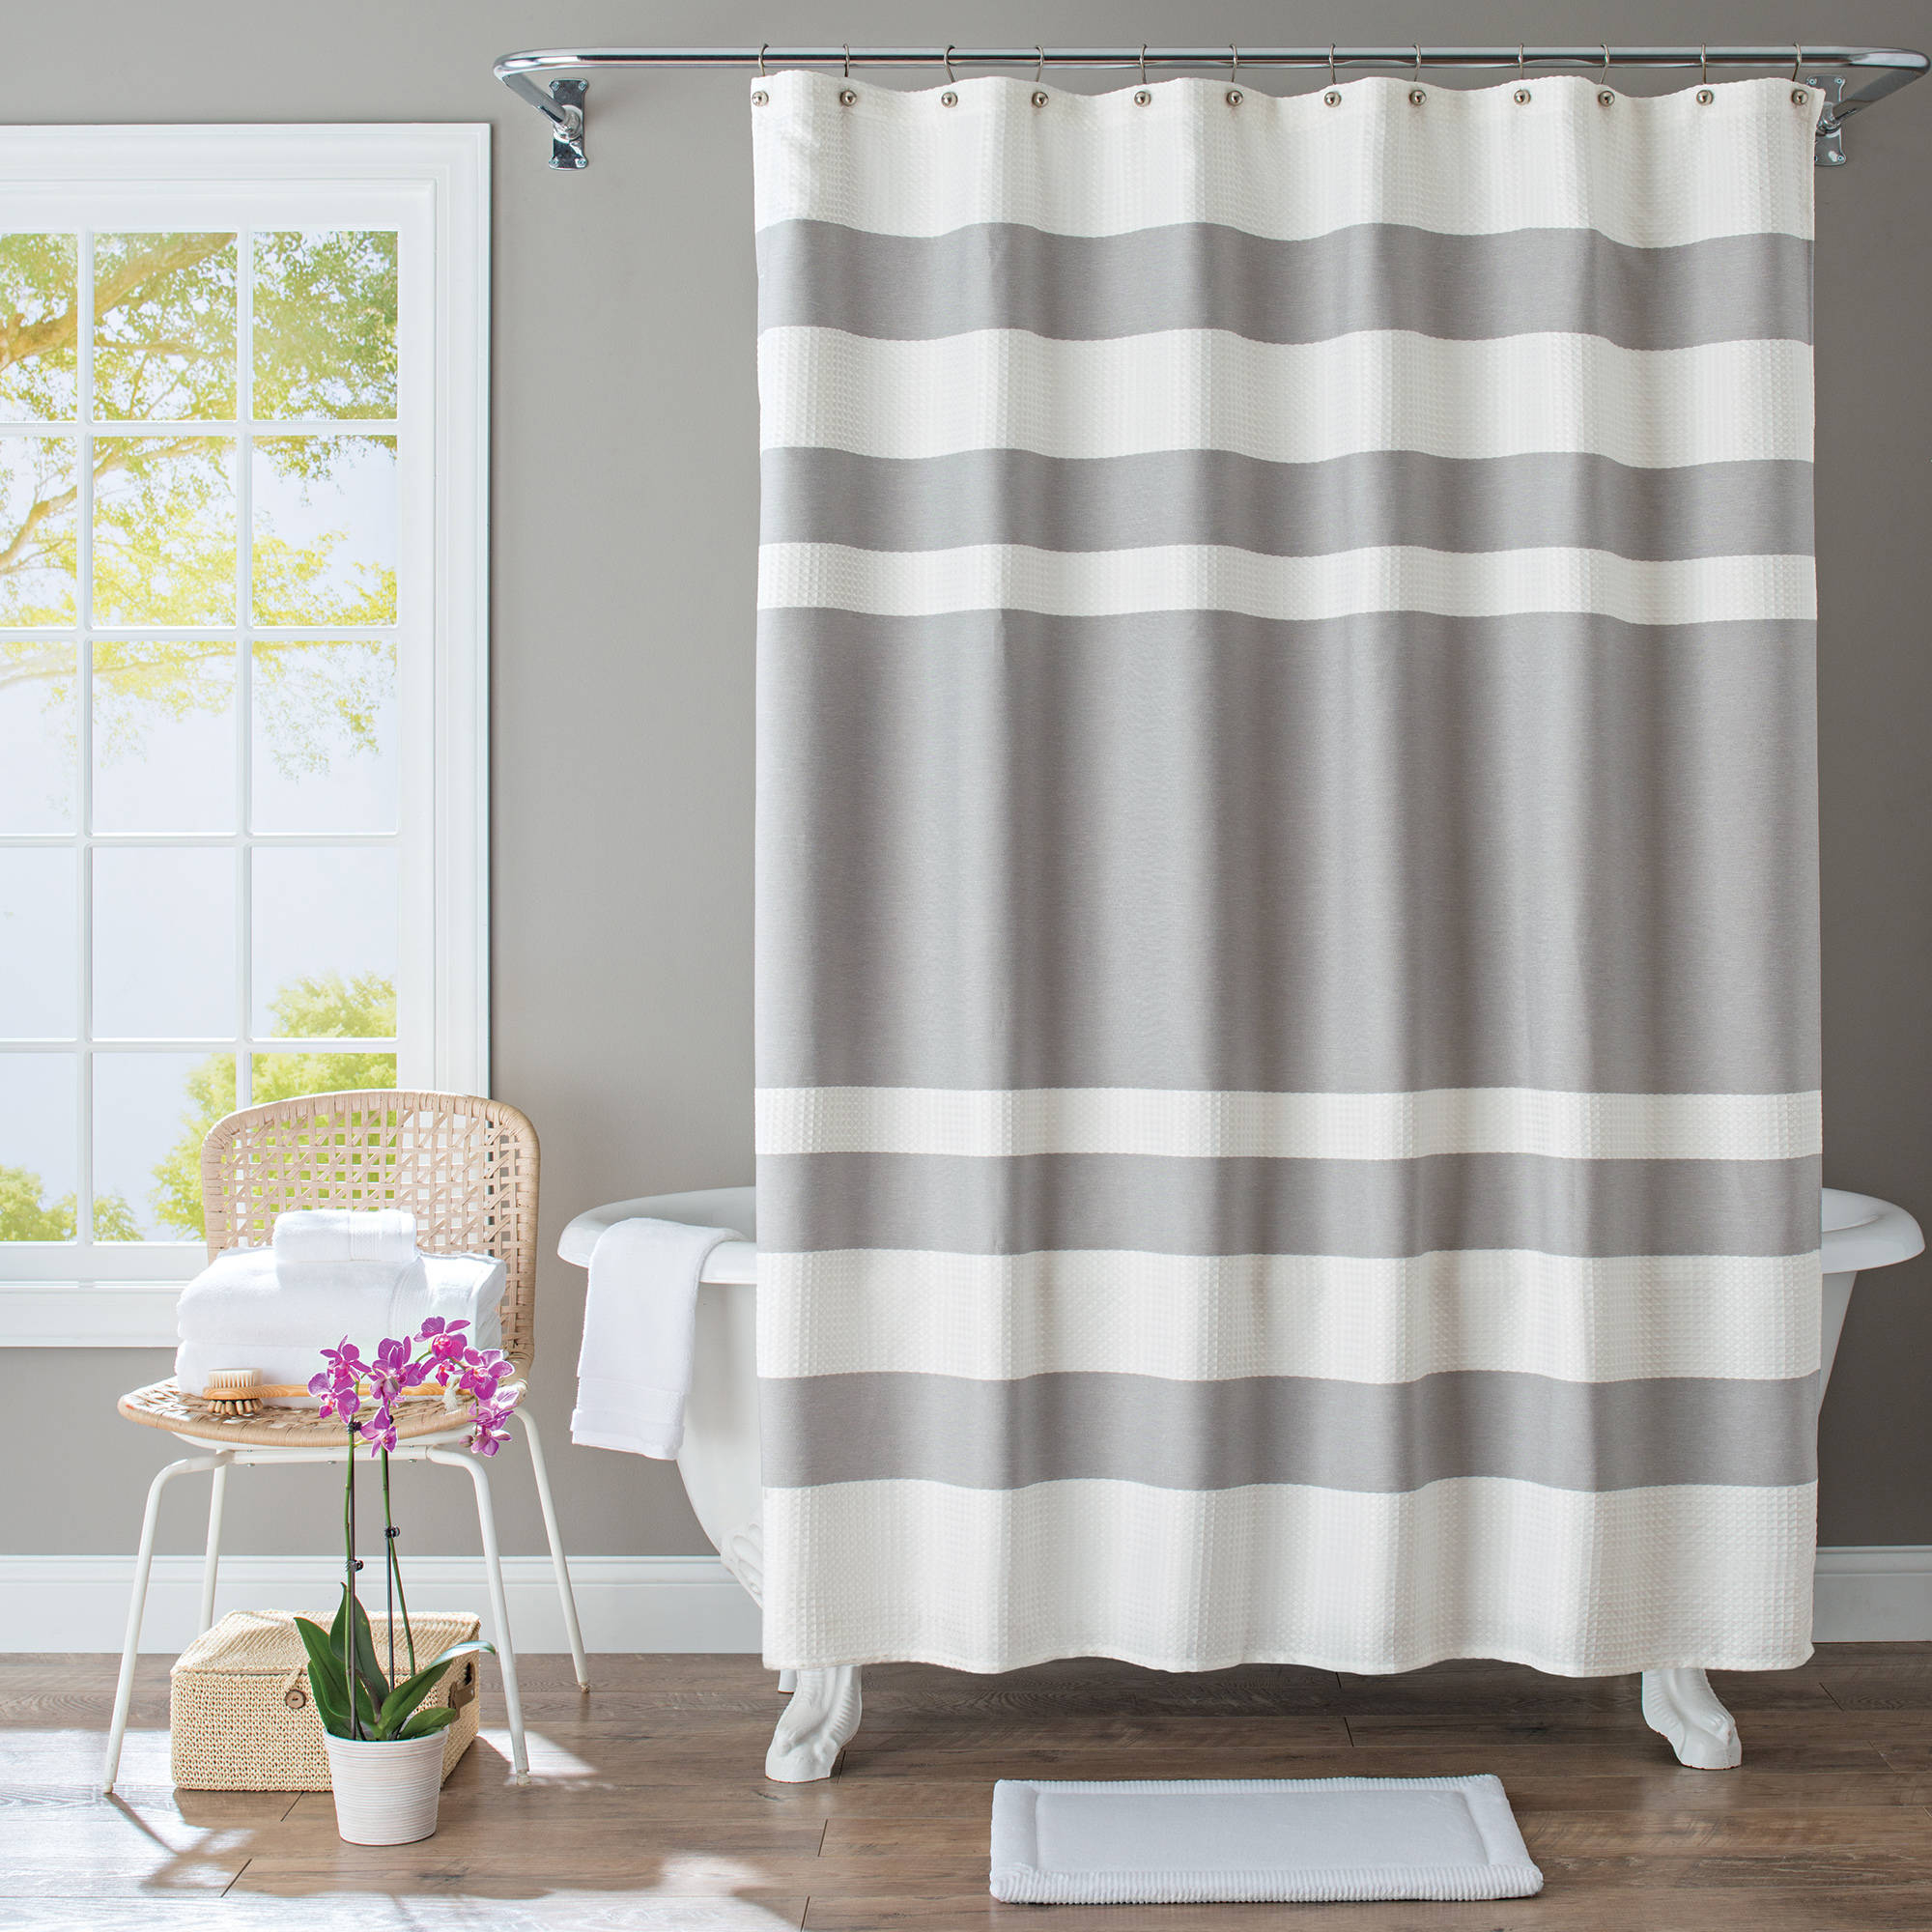 Olive Green Shower Curtain Liner • Shower Curtains Ideas